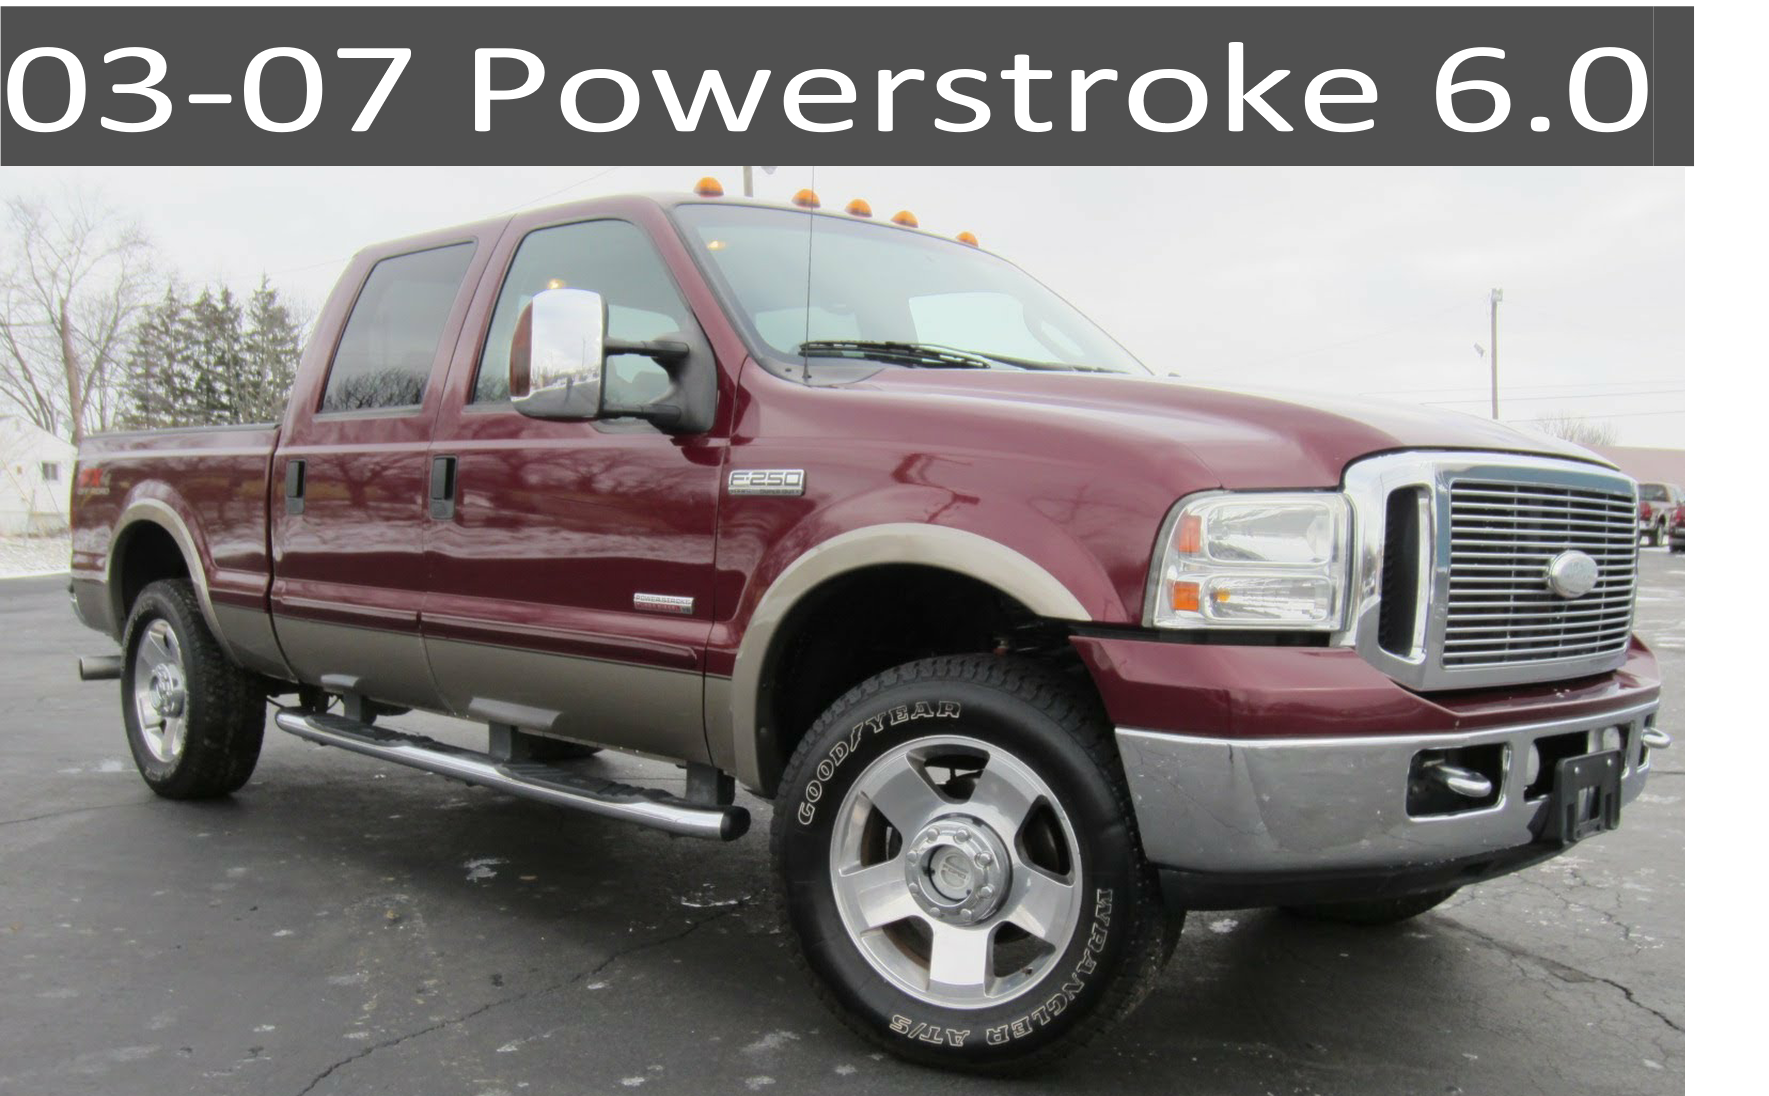 03-07 Ford 6.0 Powerstroke Diesel Parts